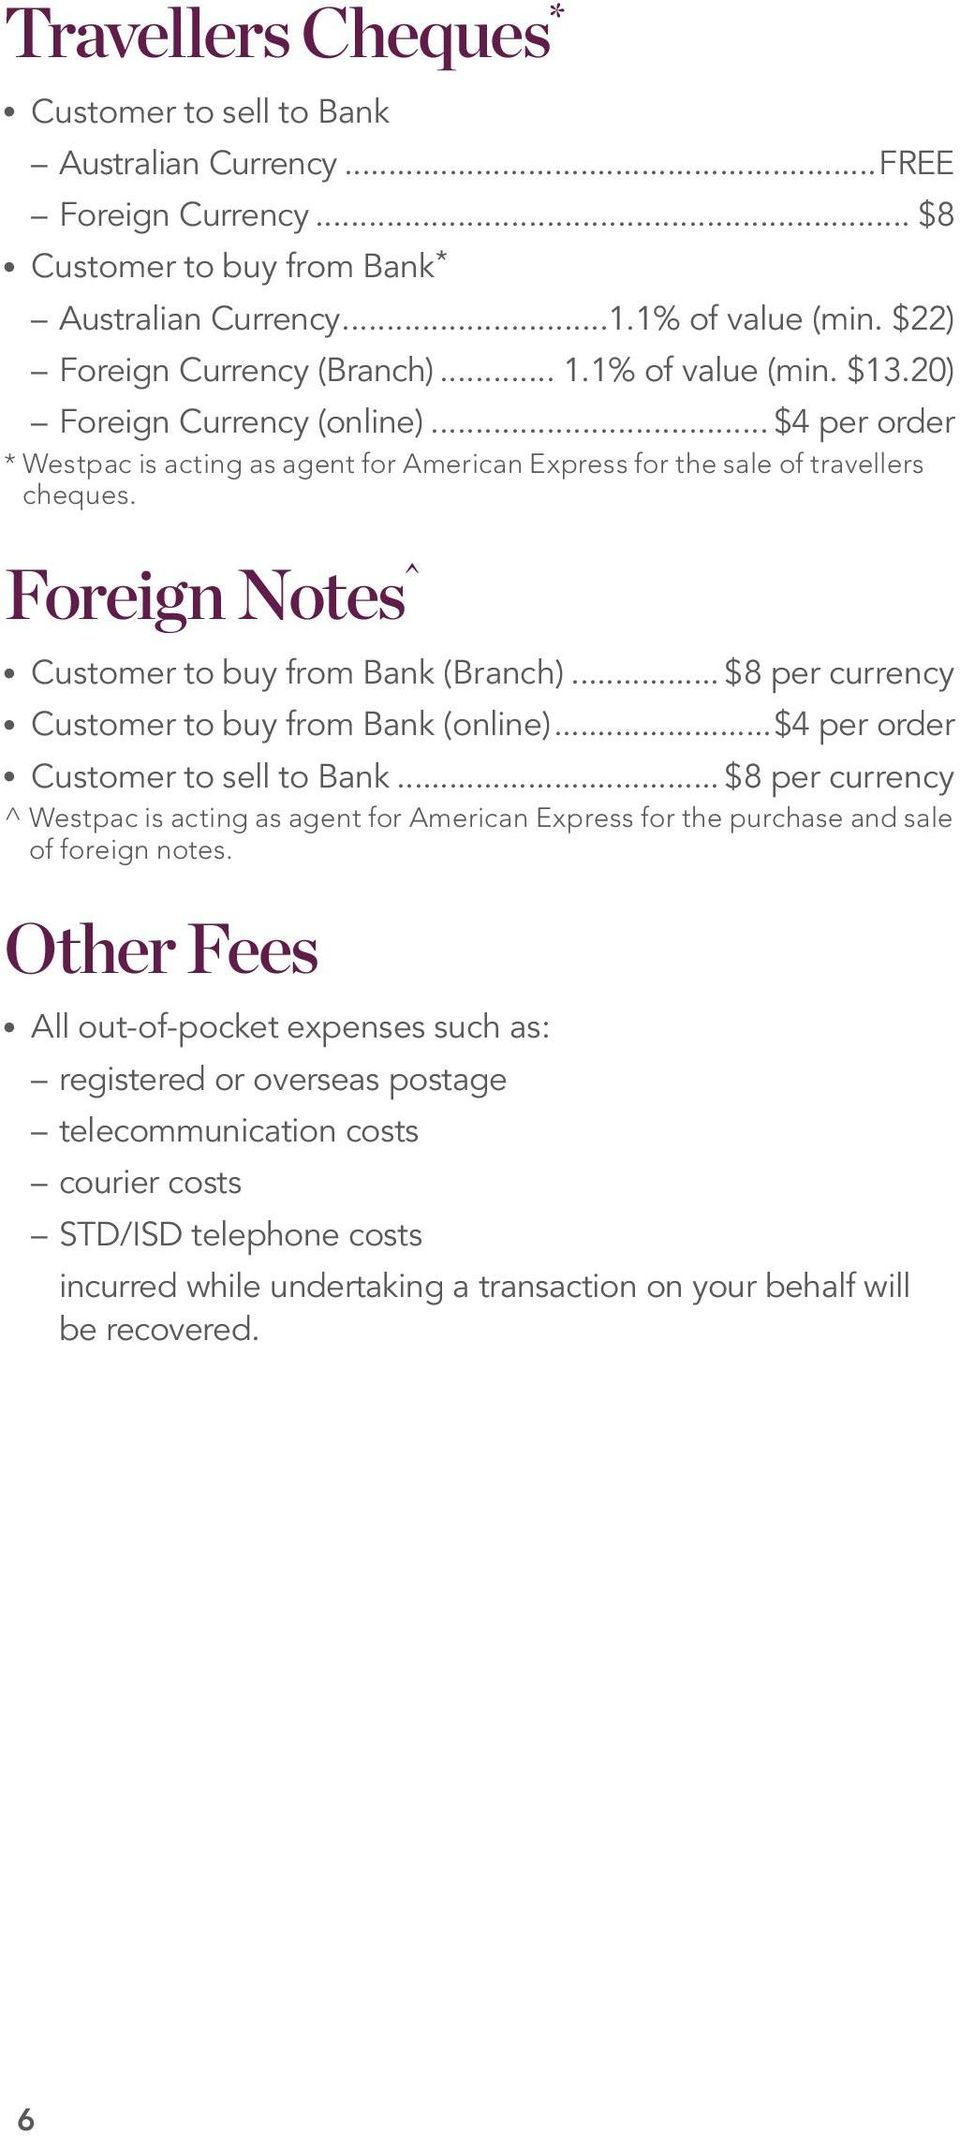 Foreign Notes^ Customer to buy from Bank (Branch)... $8 per currency Customer to buy from Bank (online)...$4 per order Customer to sell to Bank.